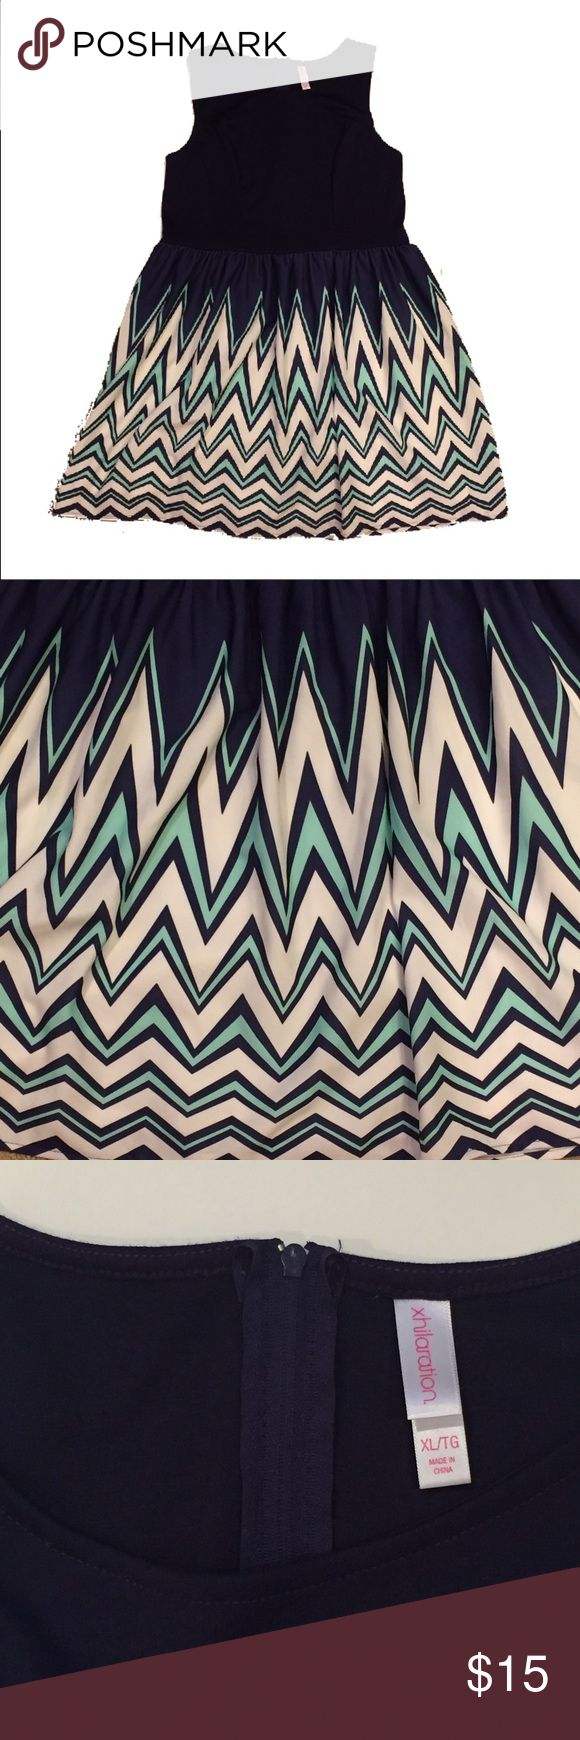 Chevron Print Xhileration Dress Solid navy top with darting. Bottom half is a teal, white and navy chevron print. Xhilaration Dresses